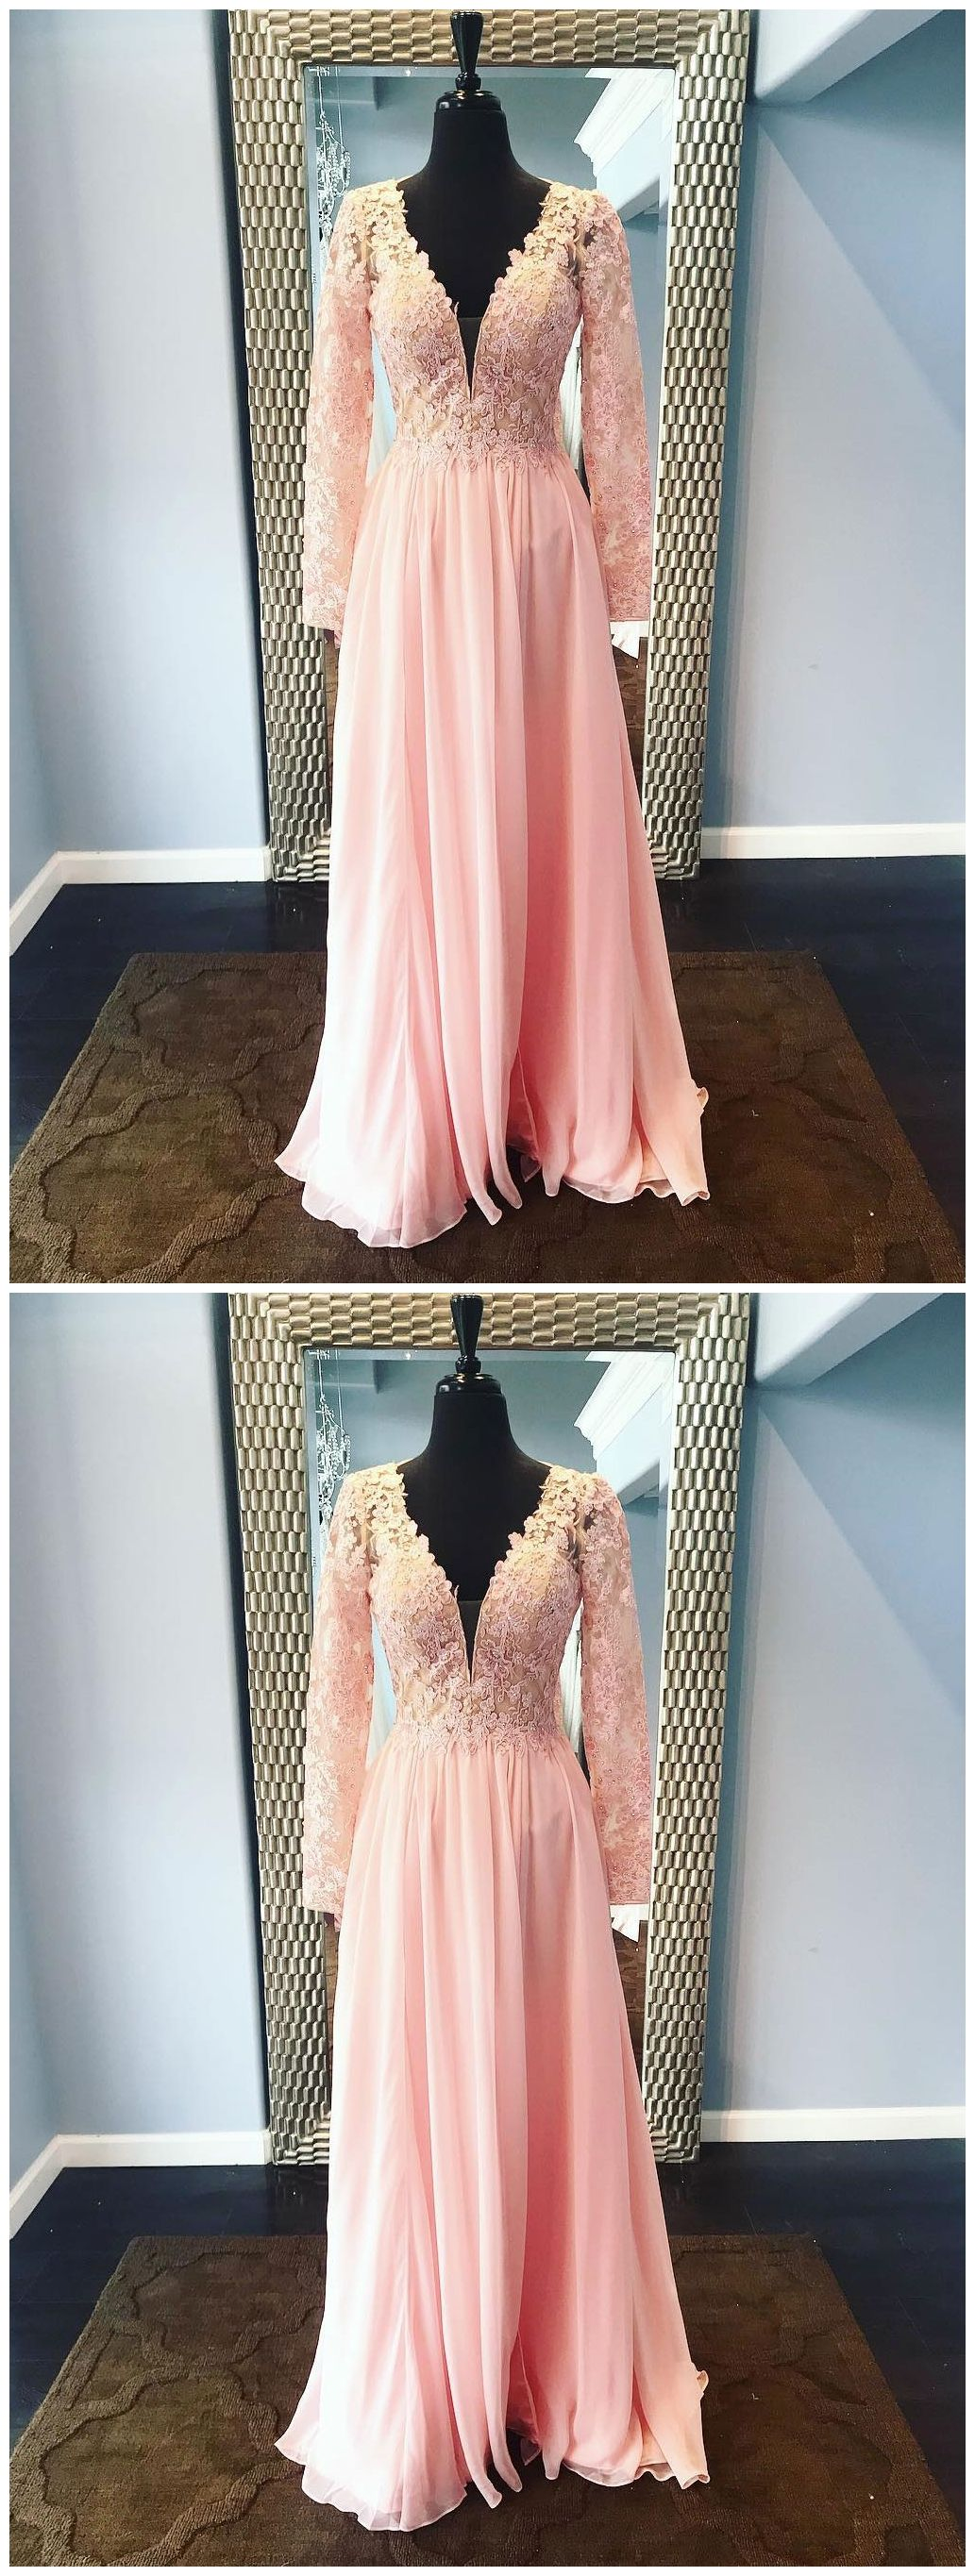 Long sleeve pink formal dresses plus size modest mother of the bride